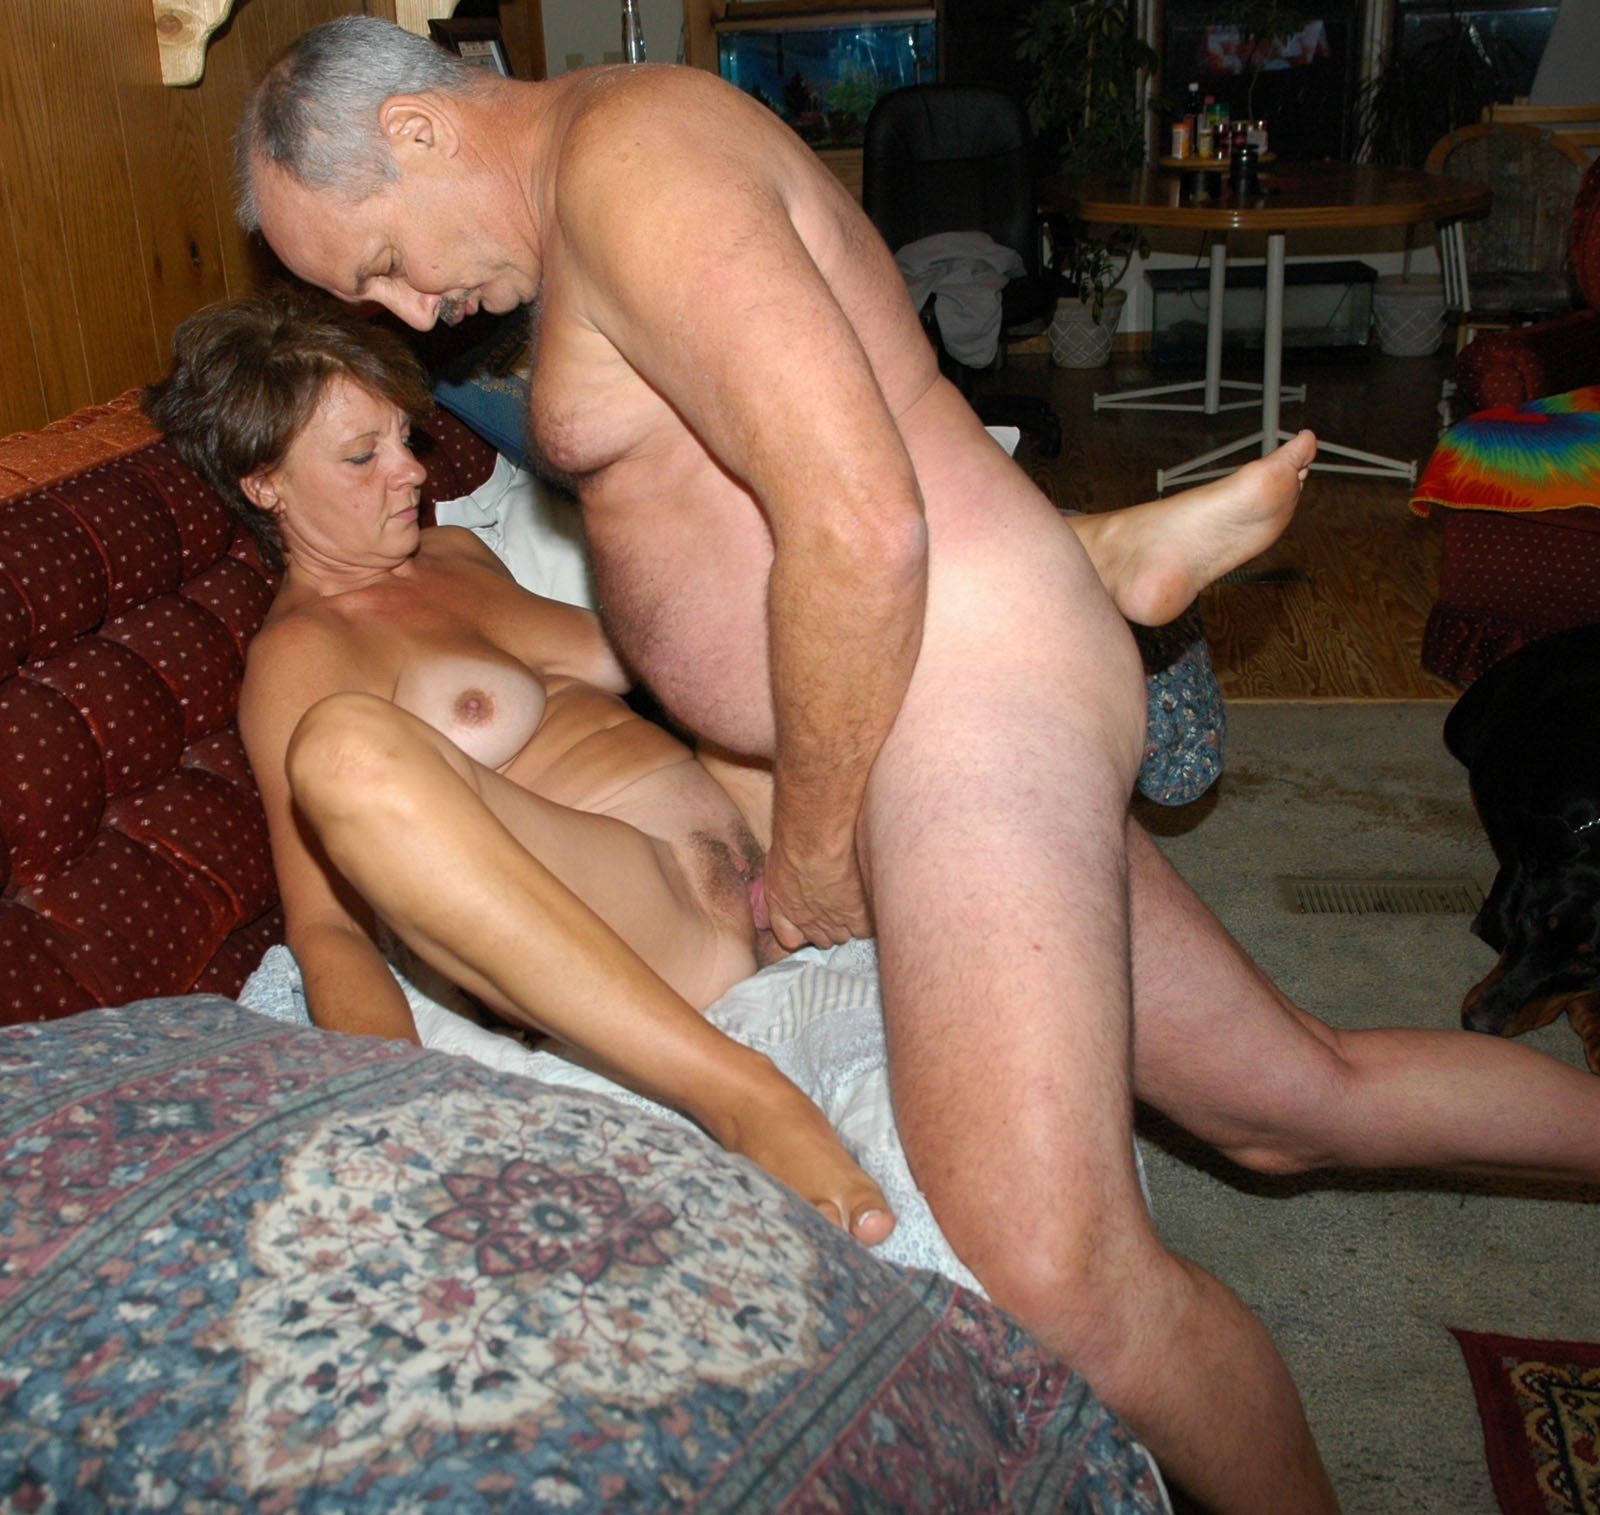 Mature Sex Vids Tumblr